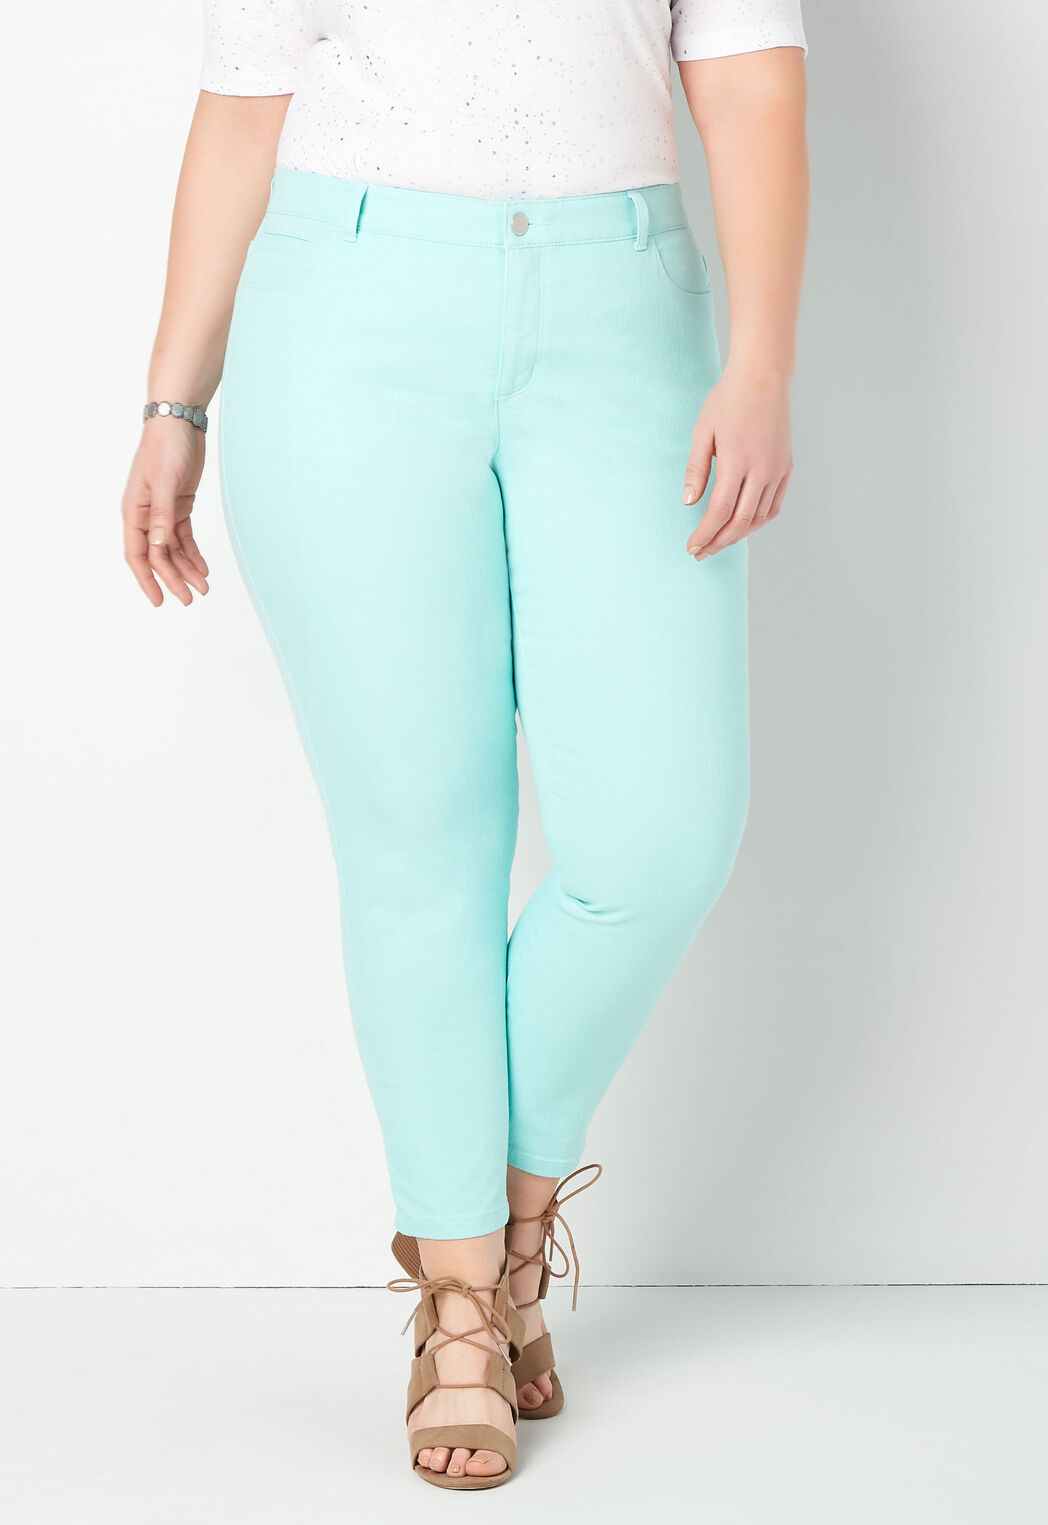 c59dae1aa4888 Signature Slimming Colored Denim Plus Size Ankle Jeans - CBK Web Store